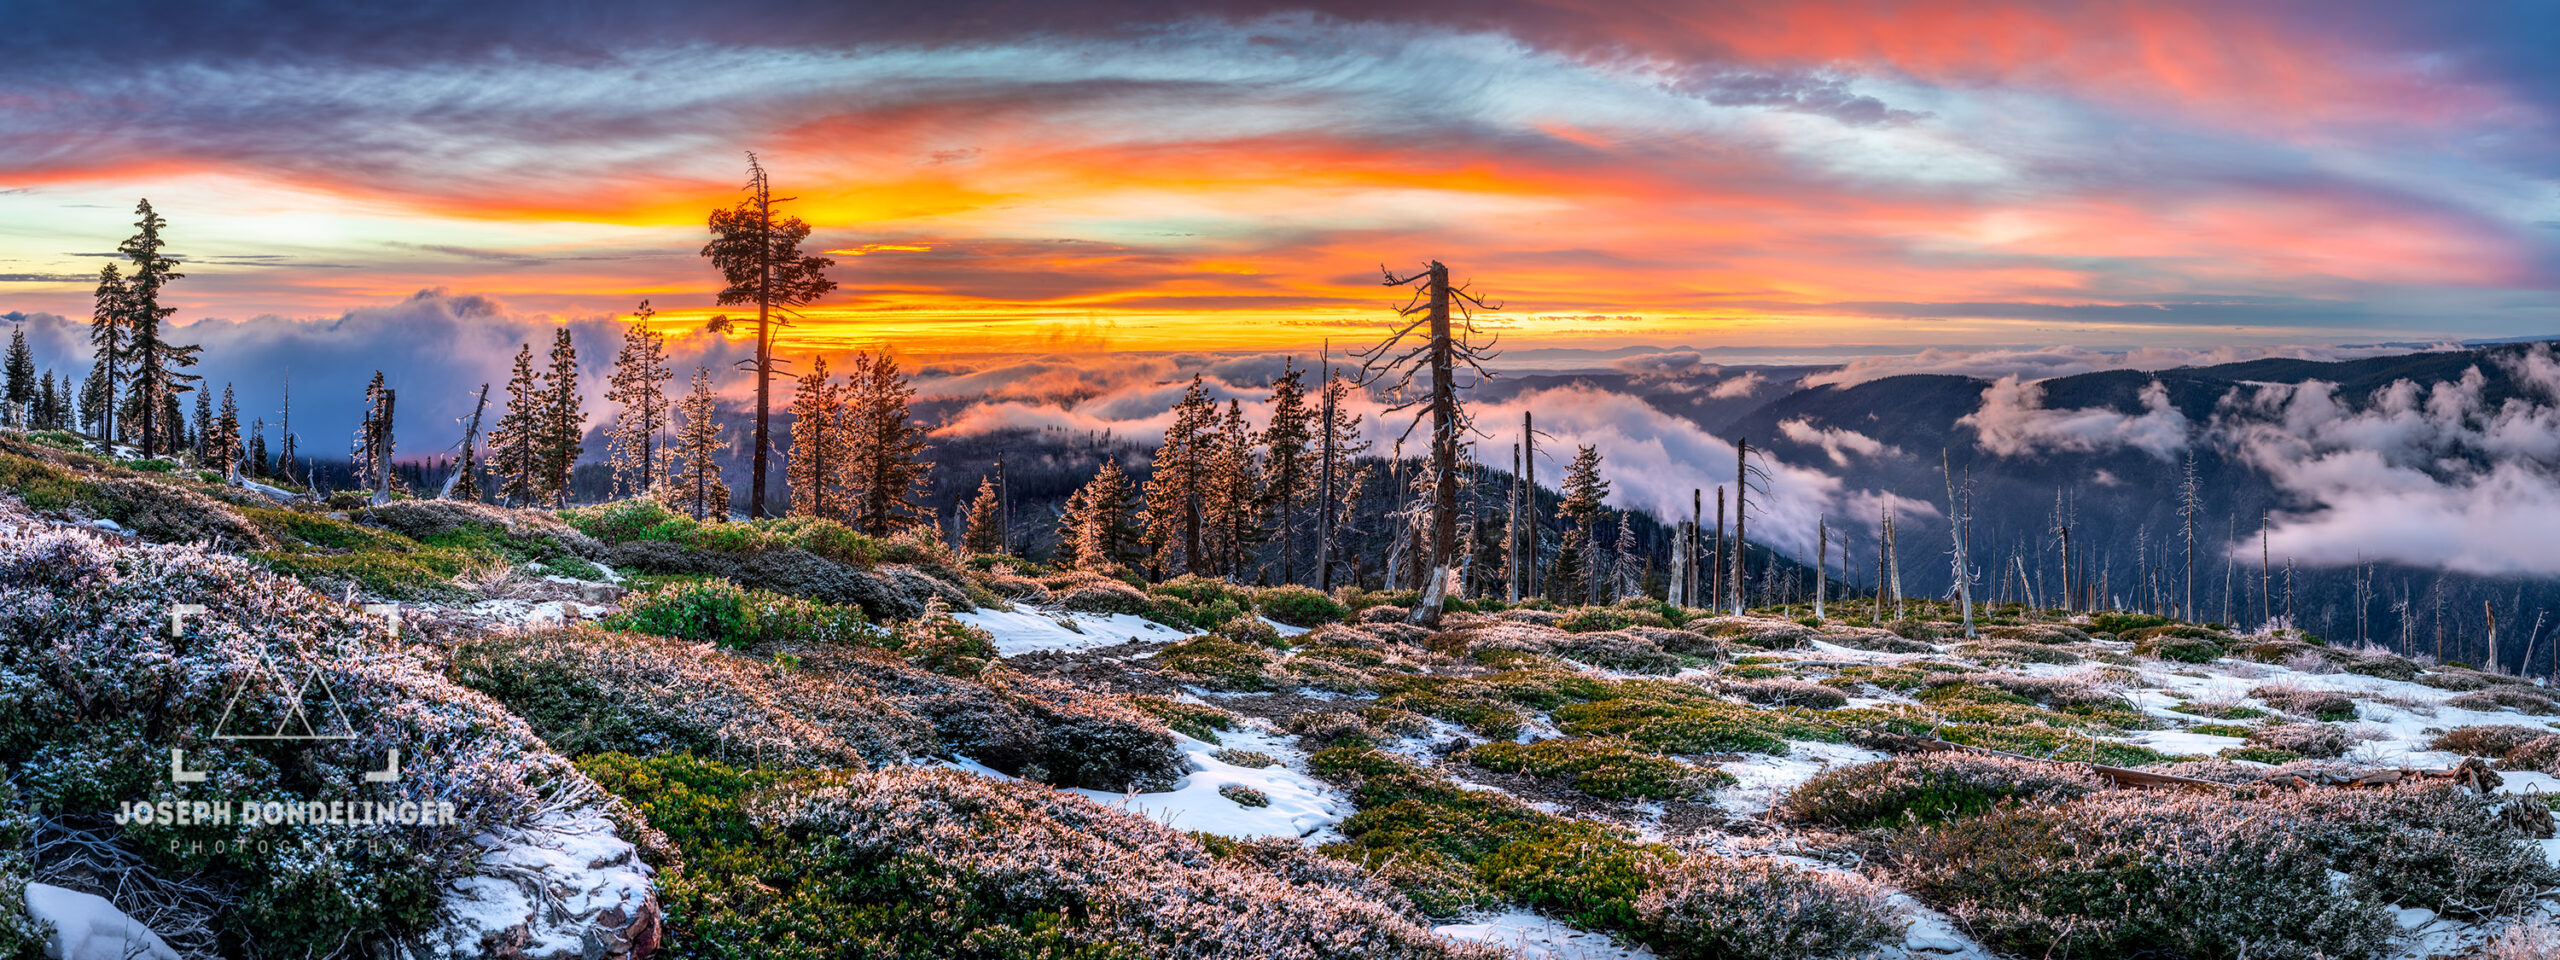 Panoramic image of a spectacular sunset over canyon fog